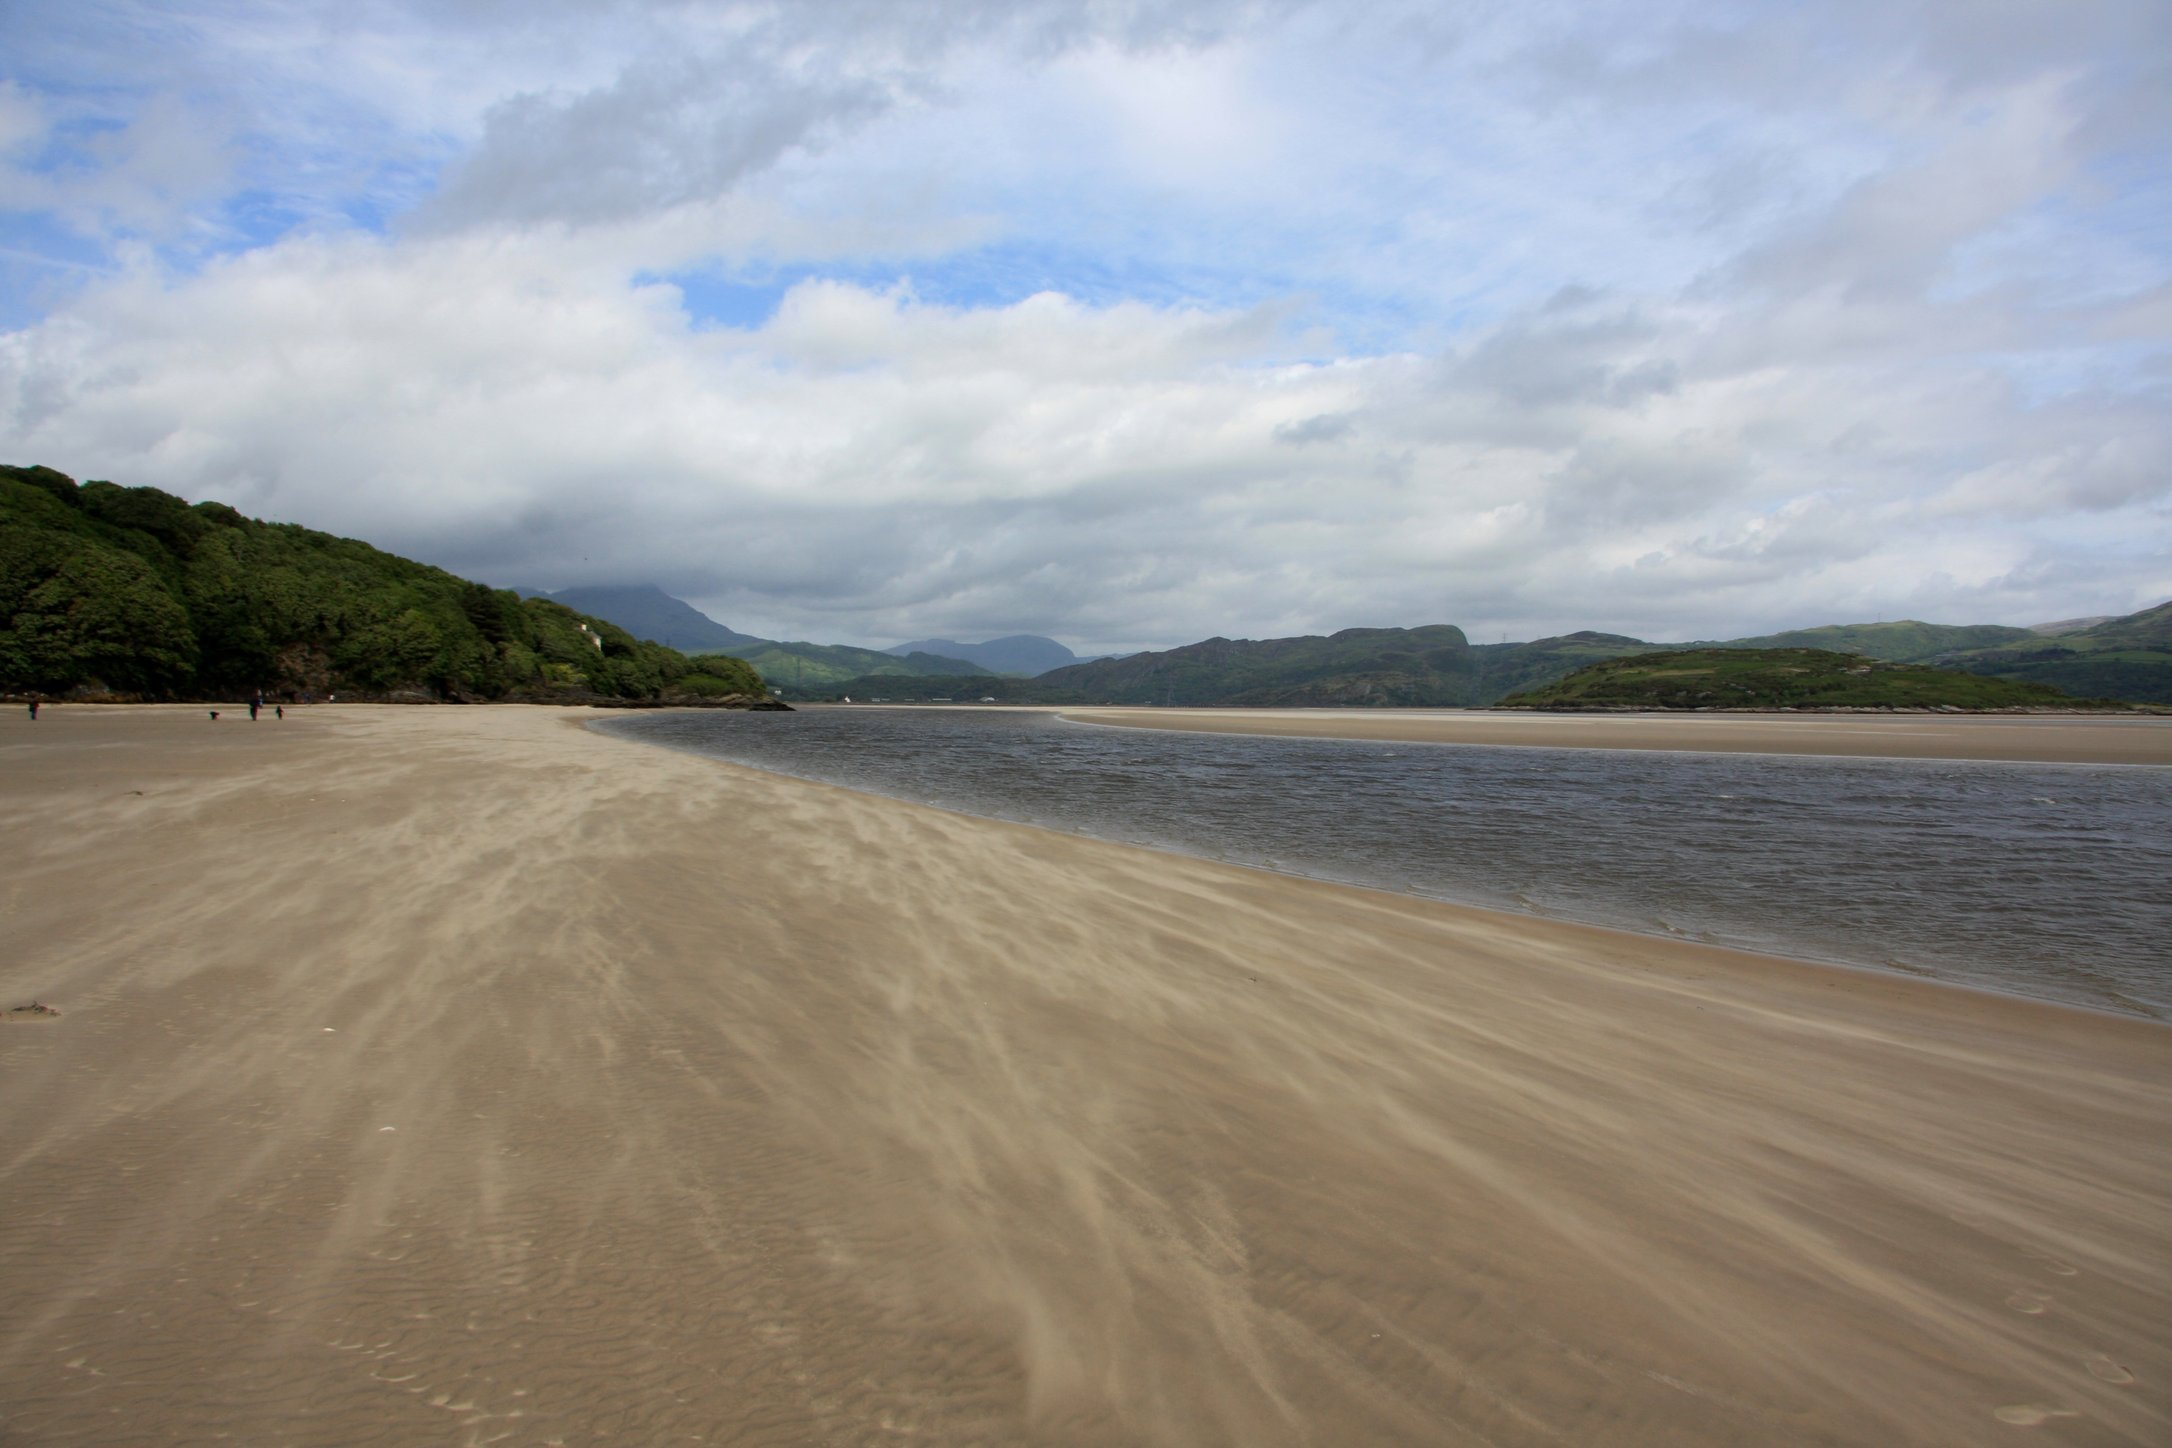 Portmeirion beach_5777376543_o.jpg